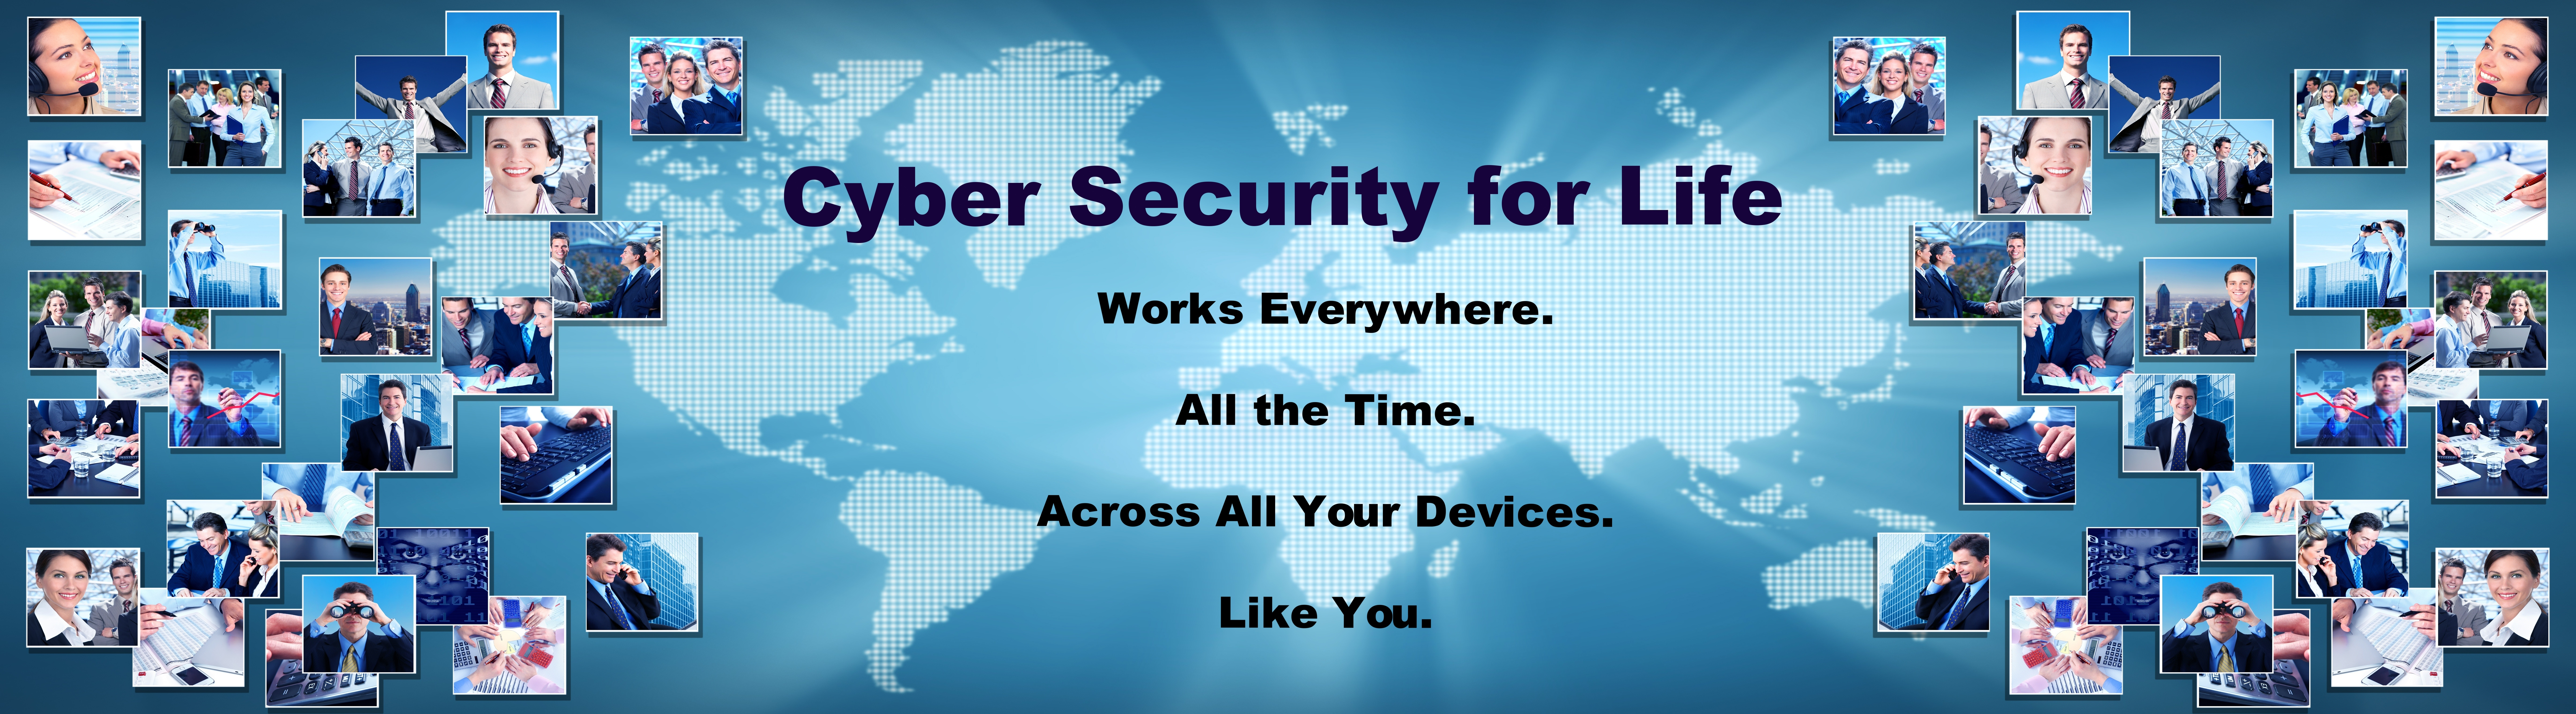 banner_tech_cyber_people_collage_world-842806-edited.jpeg